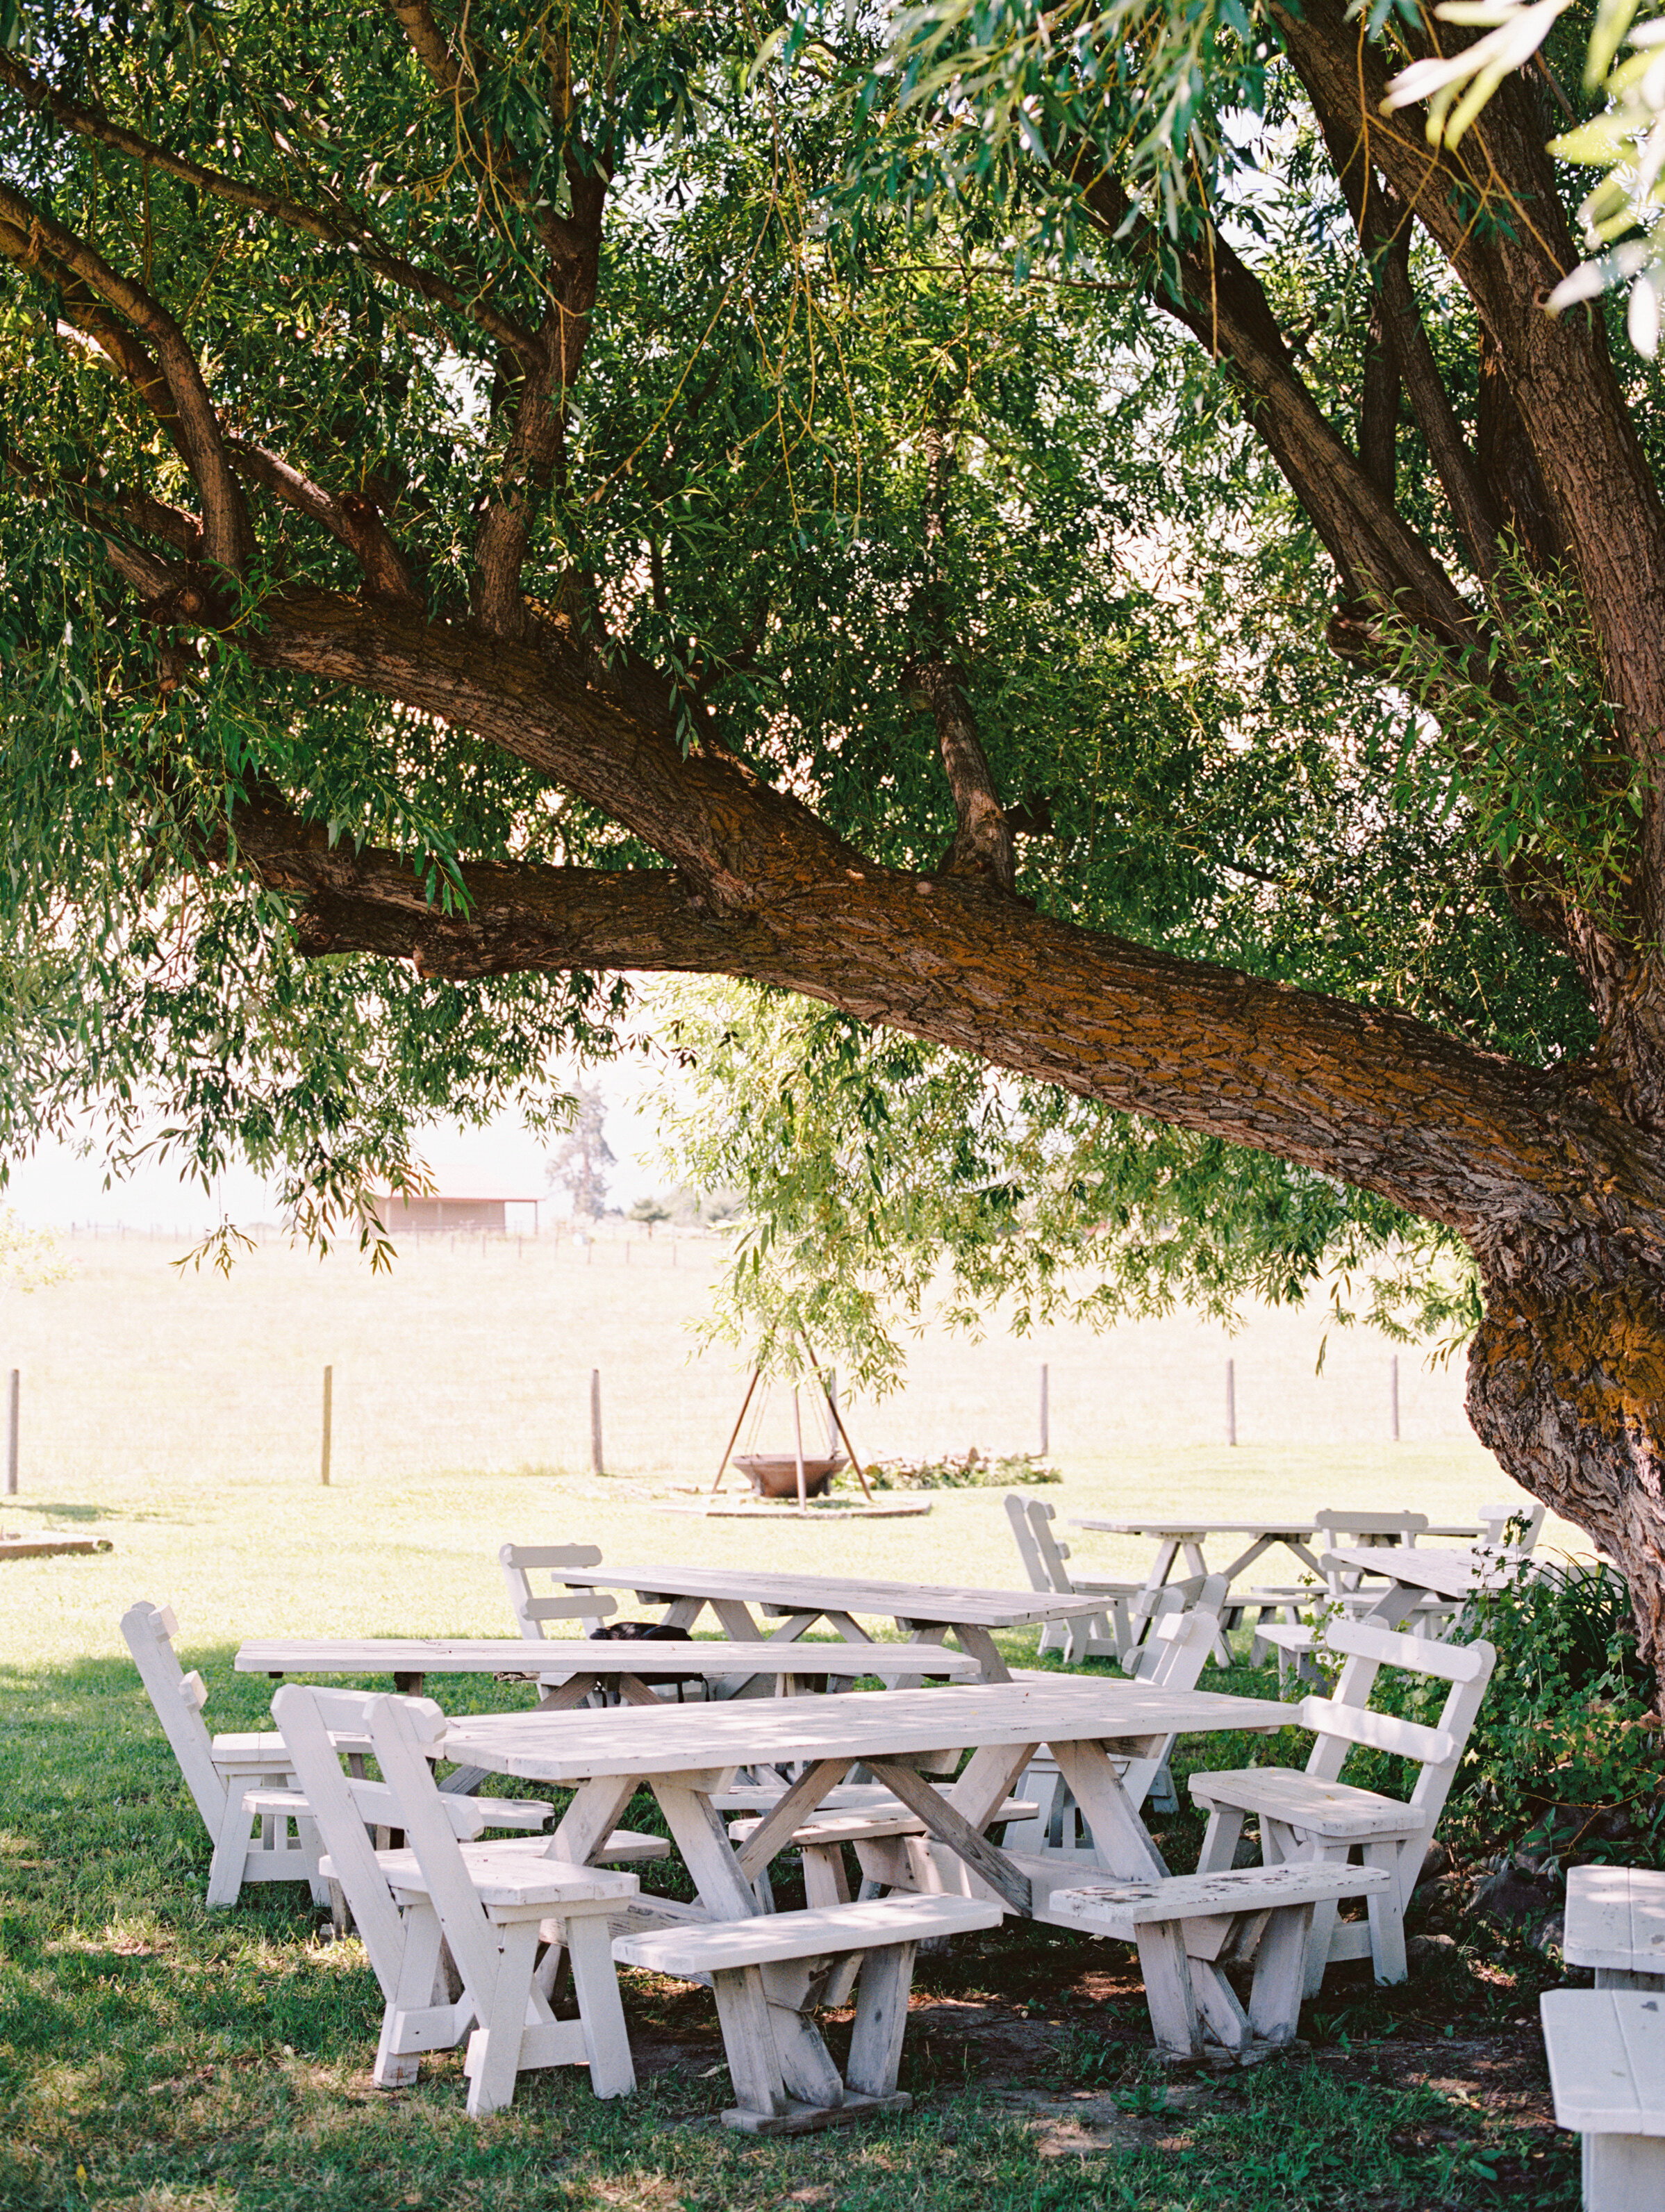 Willow Hall can seat approximately 50 people. Perfect for holidays, anniversaries, birthday party, or baby shower.